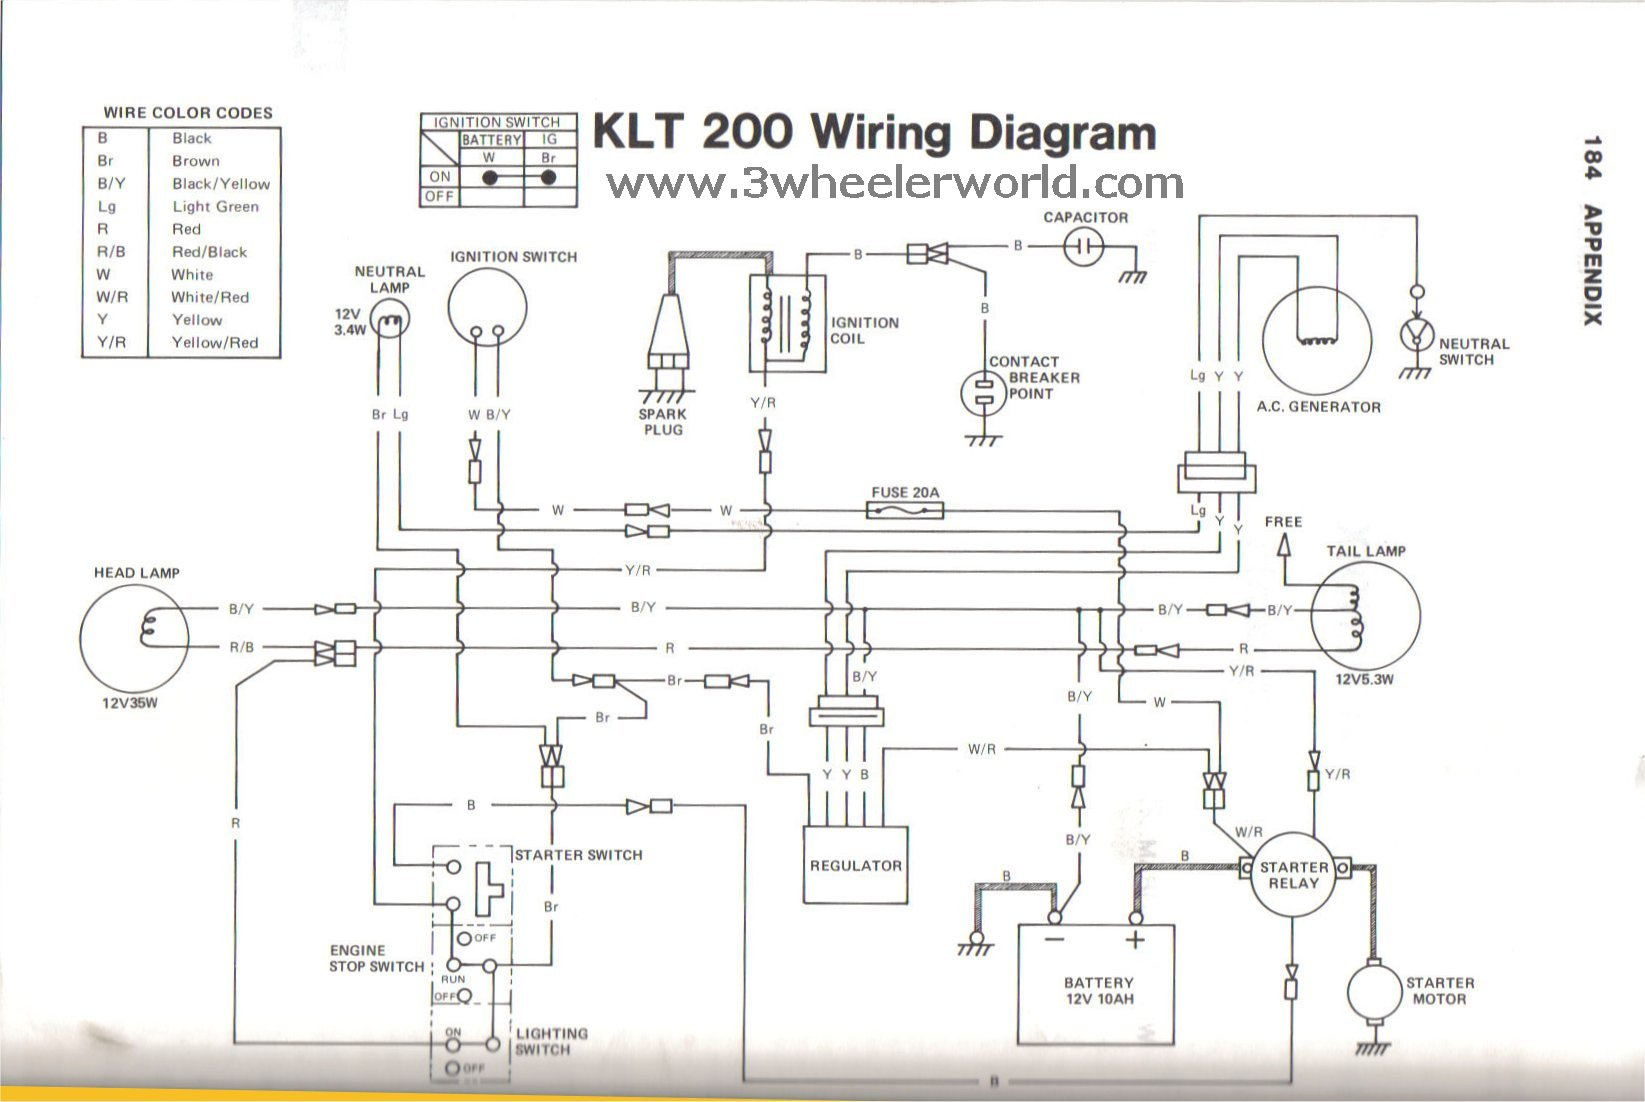 wiring diagram electrical of kawasaki klt 200 1983 kawasaki klt 200 wiring diagram